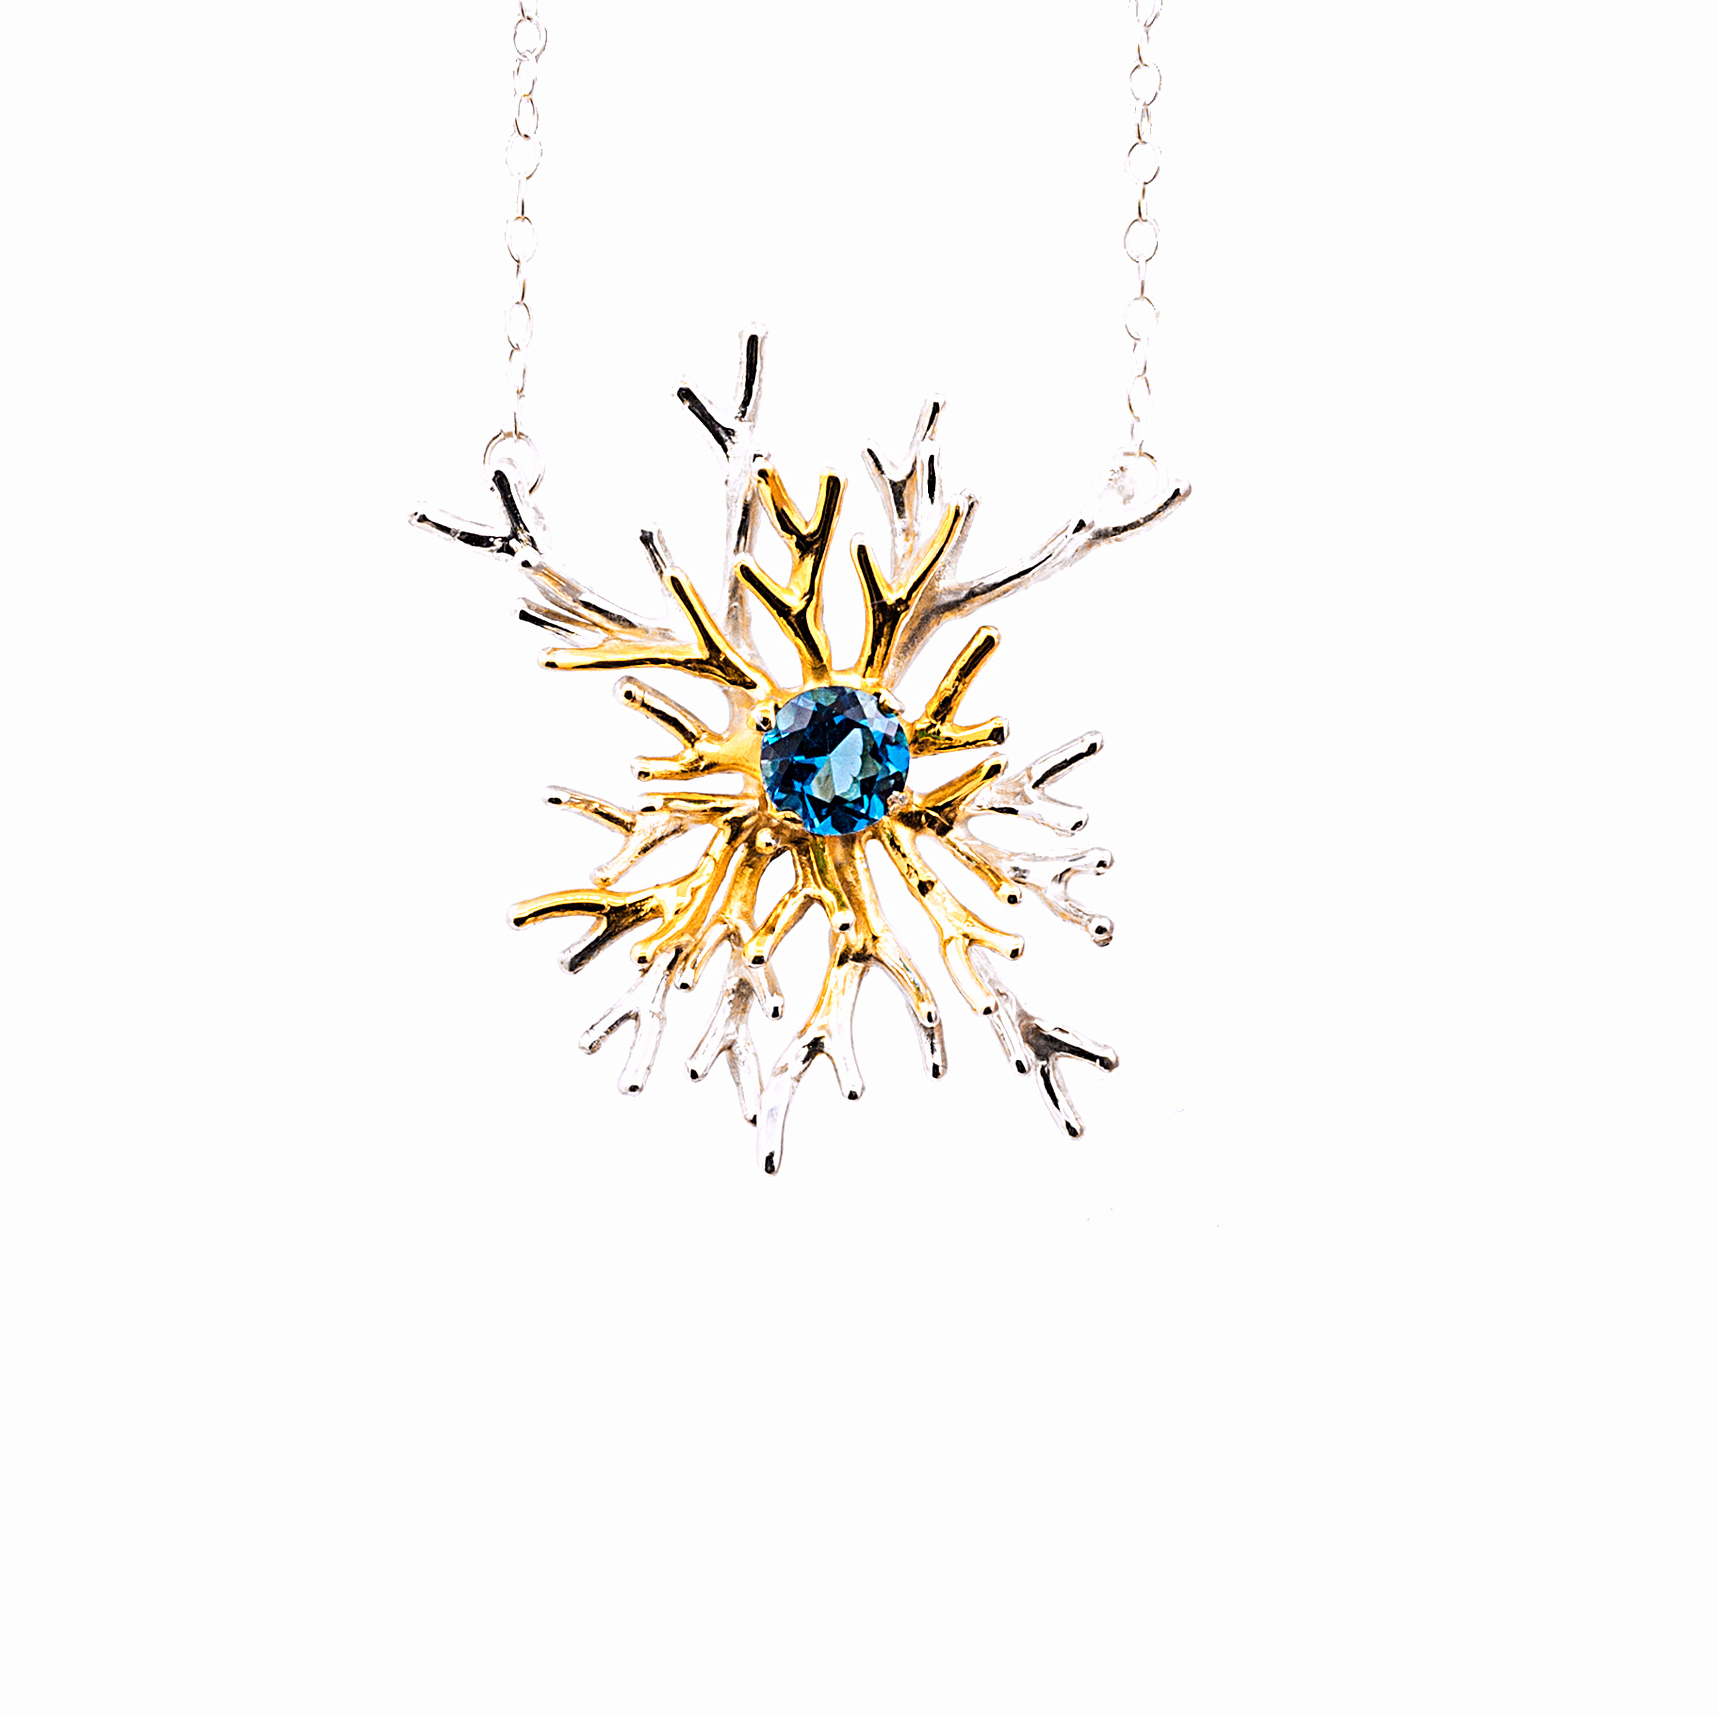 Unfolding Pendant | Sterling silver, london blue topaz, gold vermeil.